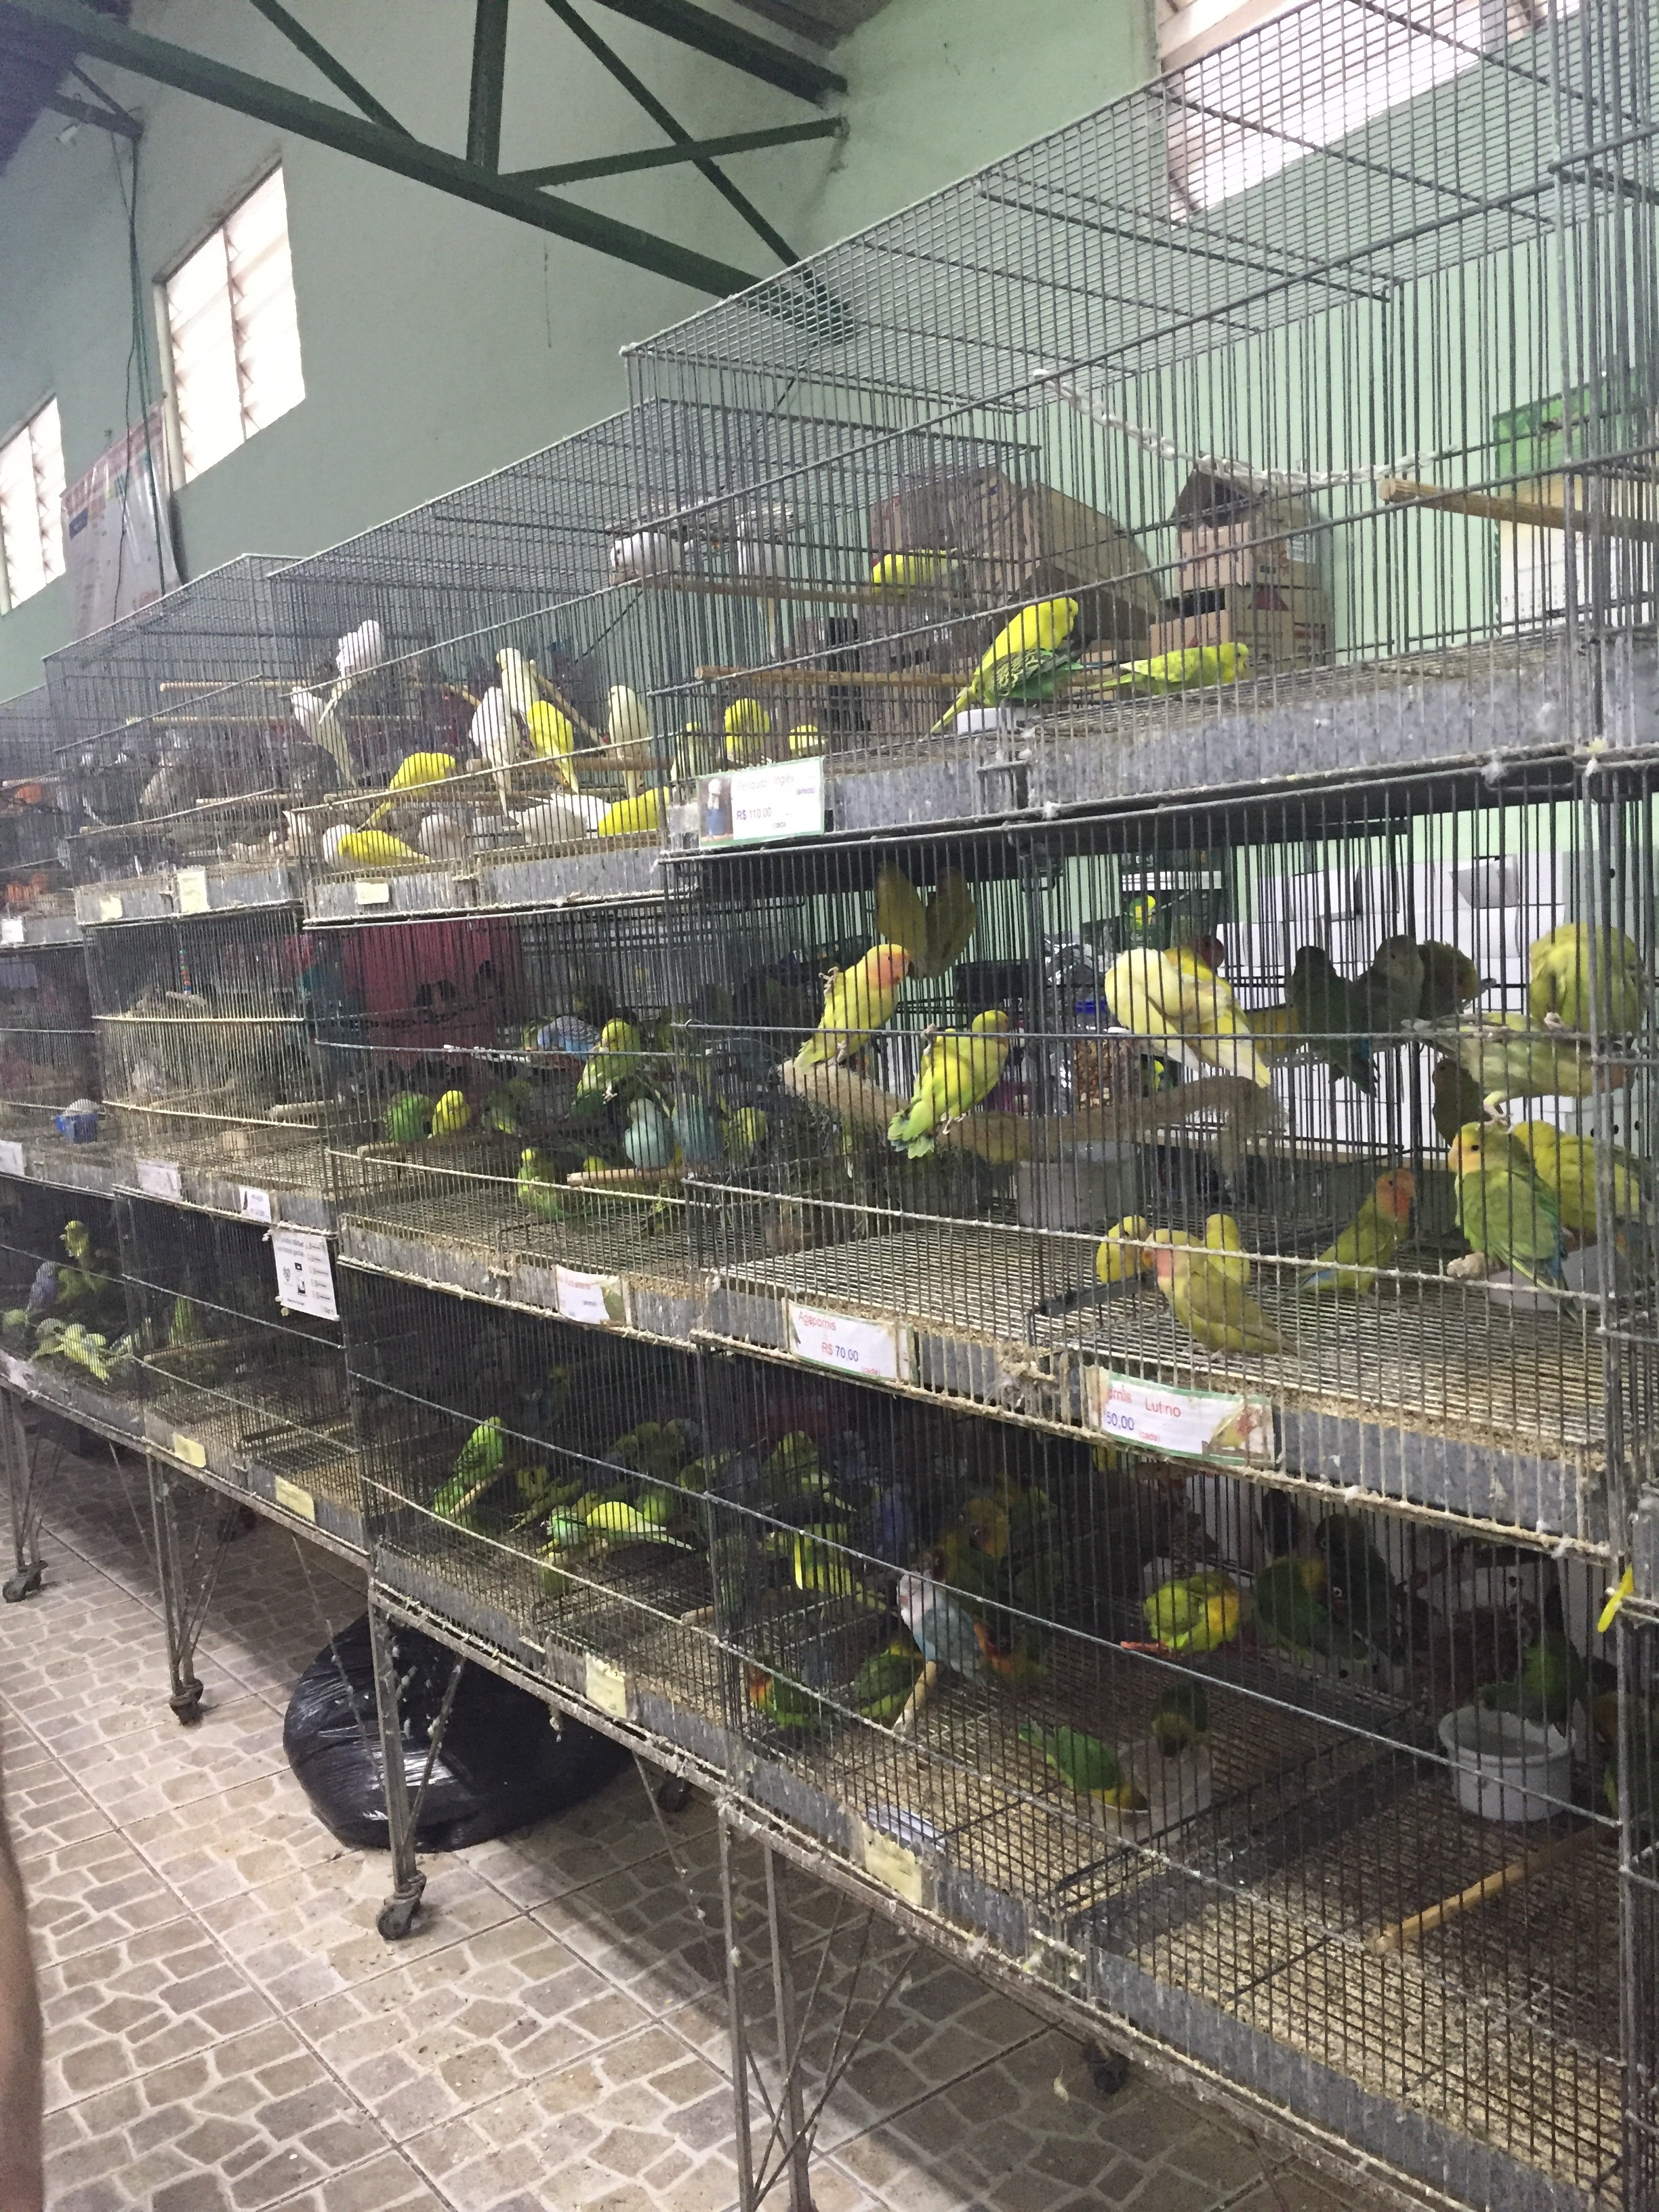 Birds for sale in Aquario Itaquera's Pet Shop in Sao Paulo, Brazil | Photograph by Talita Bateman